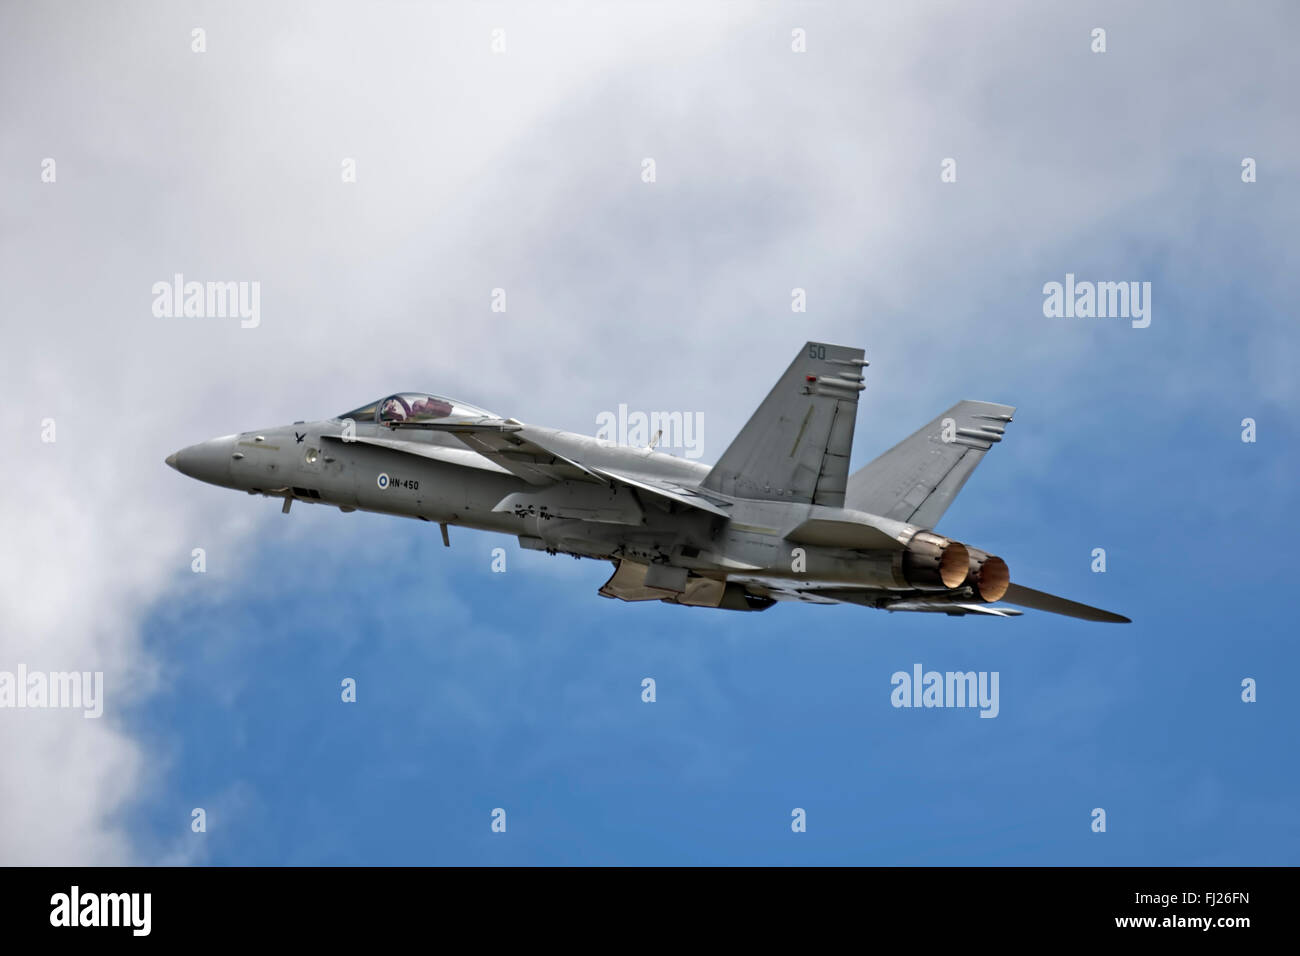 A Finnish Air Force Boeing F/A-18C Hornet at the 2009 Royal International Air Tattoo, RAF Fairford, Gloucestershire, - Stock Image